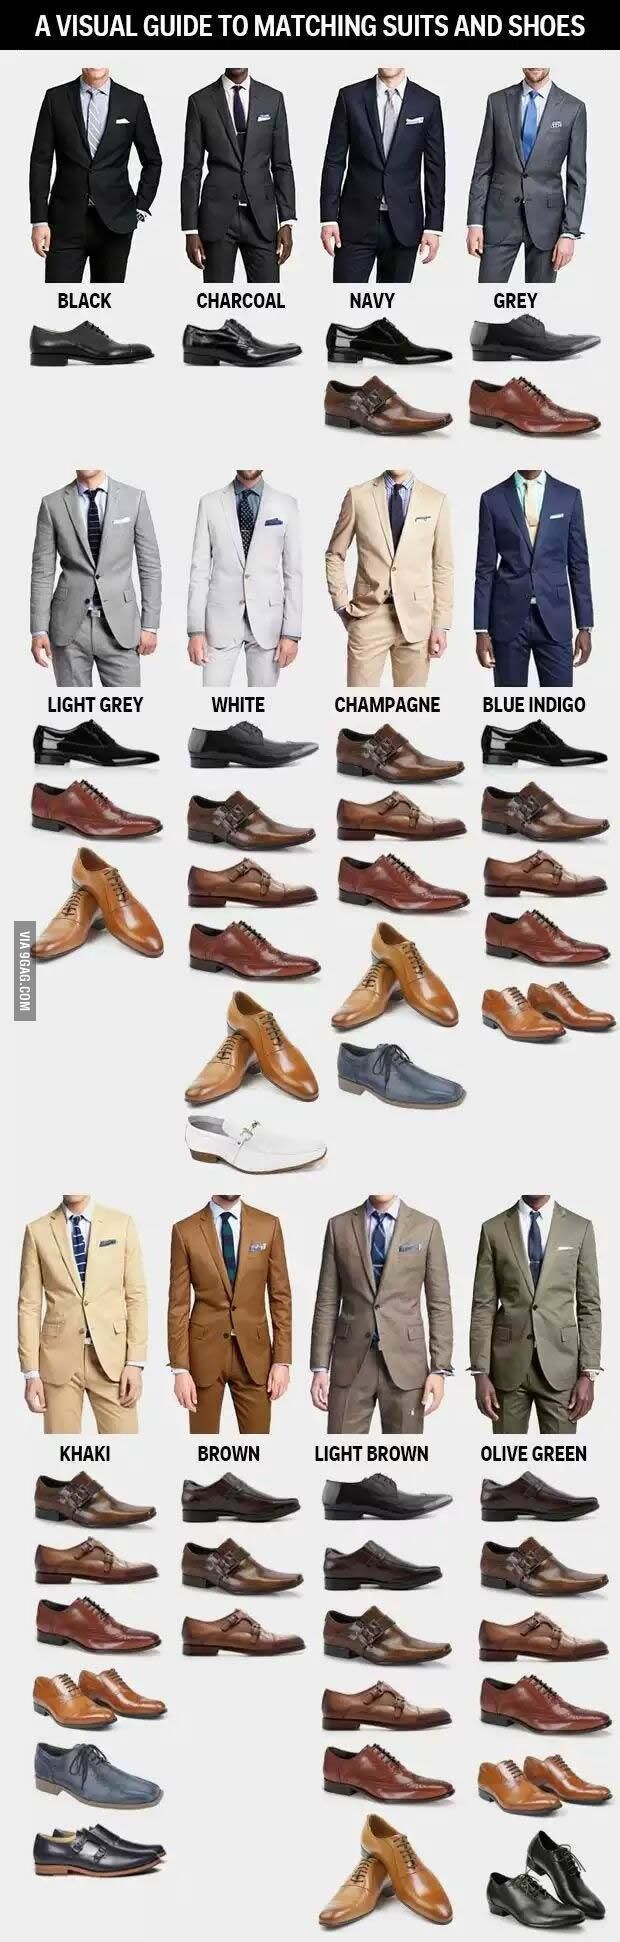 Men's suits and combo style